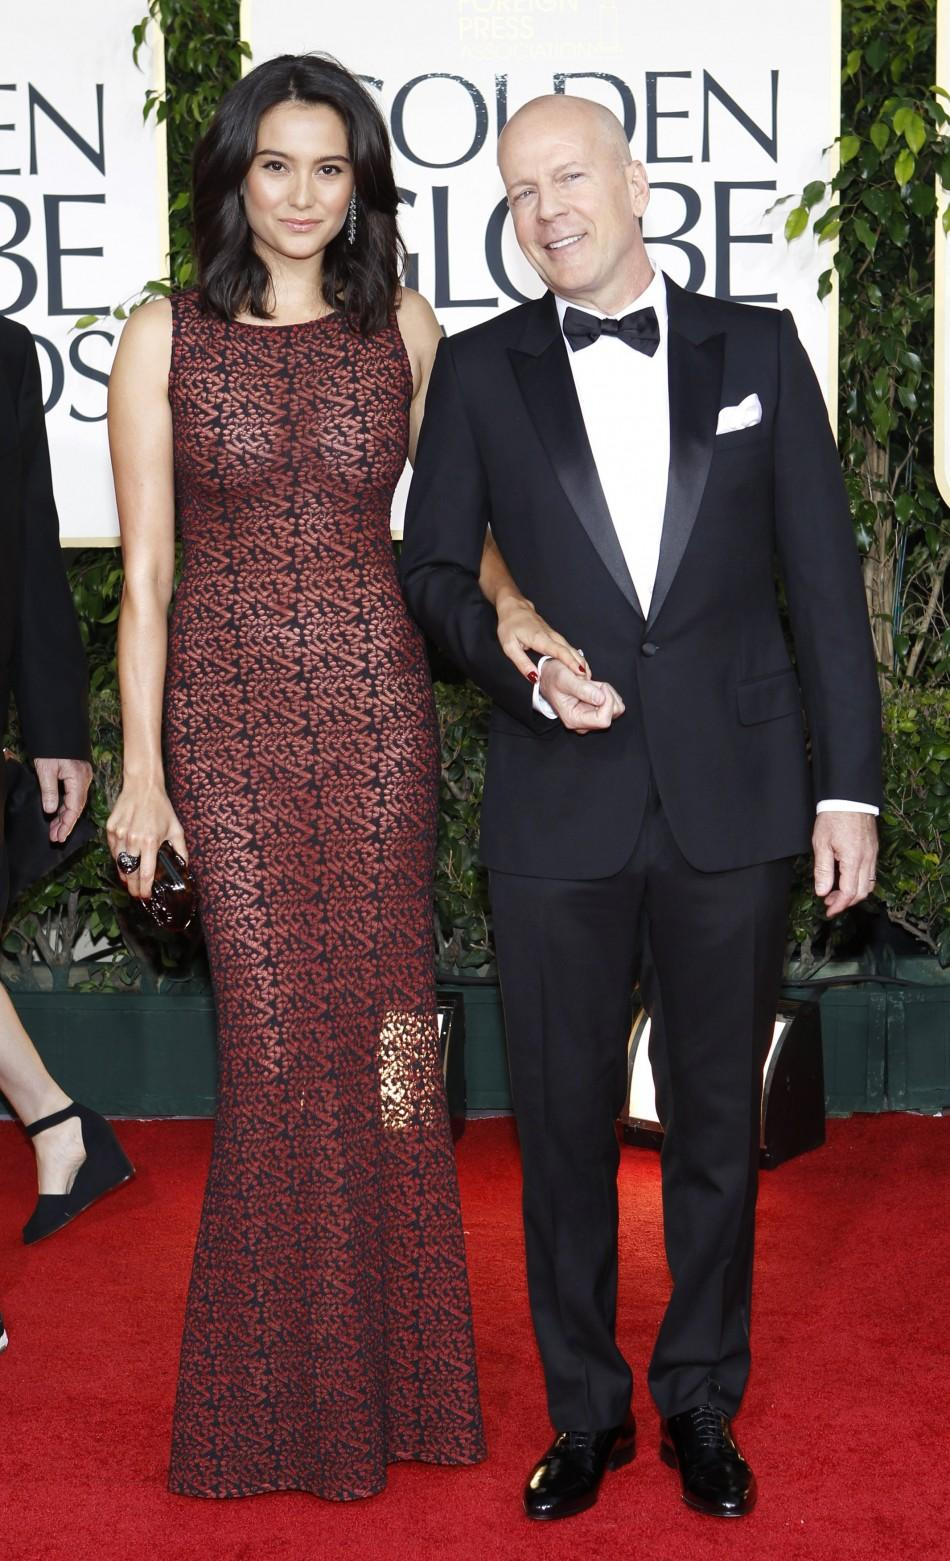 Actor Bruce Willis and his wife Emma Heming arrive at the 68th annual Golden Globe Awards in Beverly Hills, California, January 16, 2011.